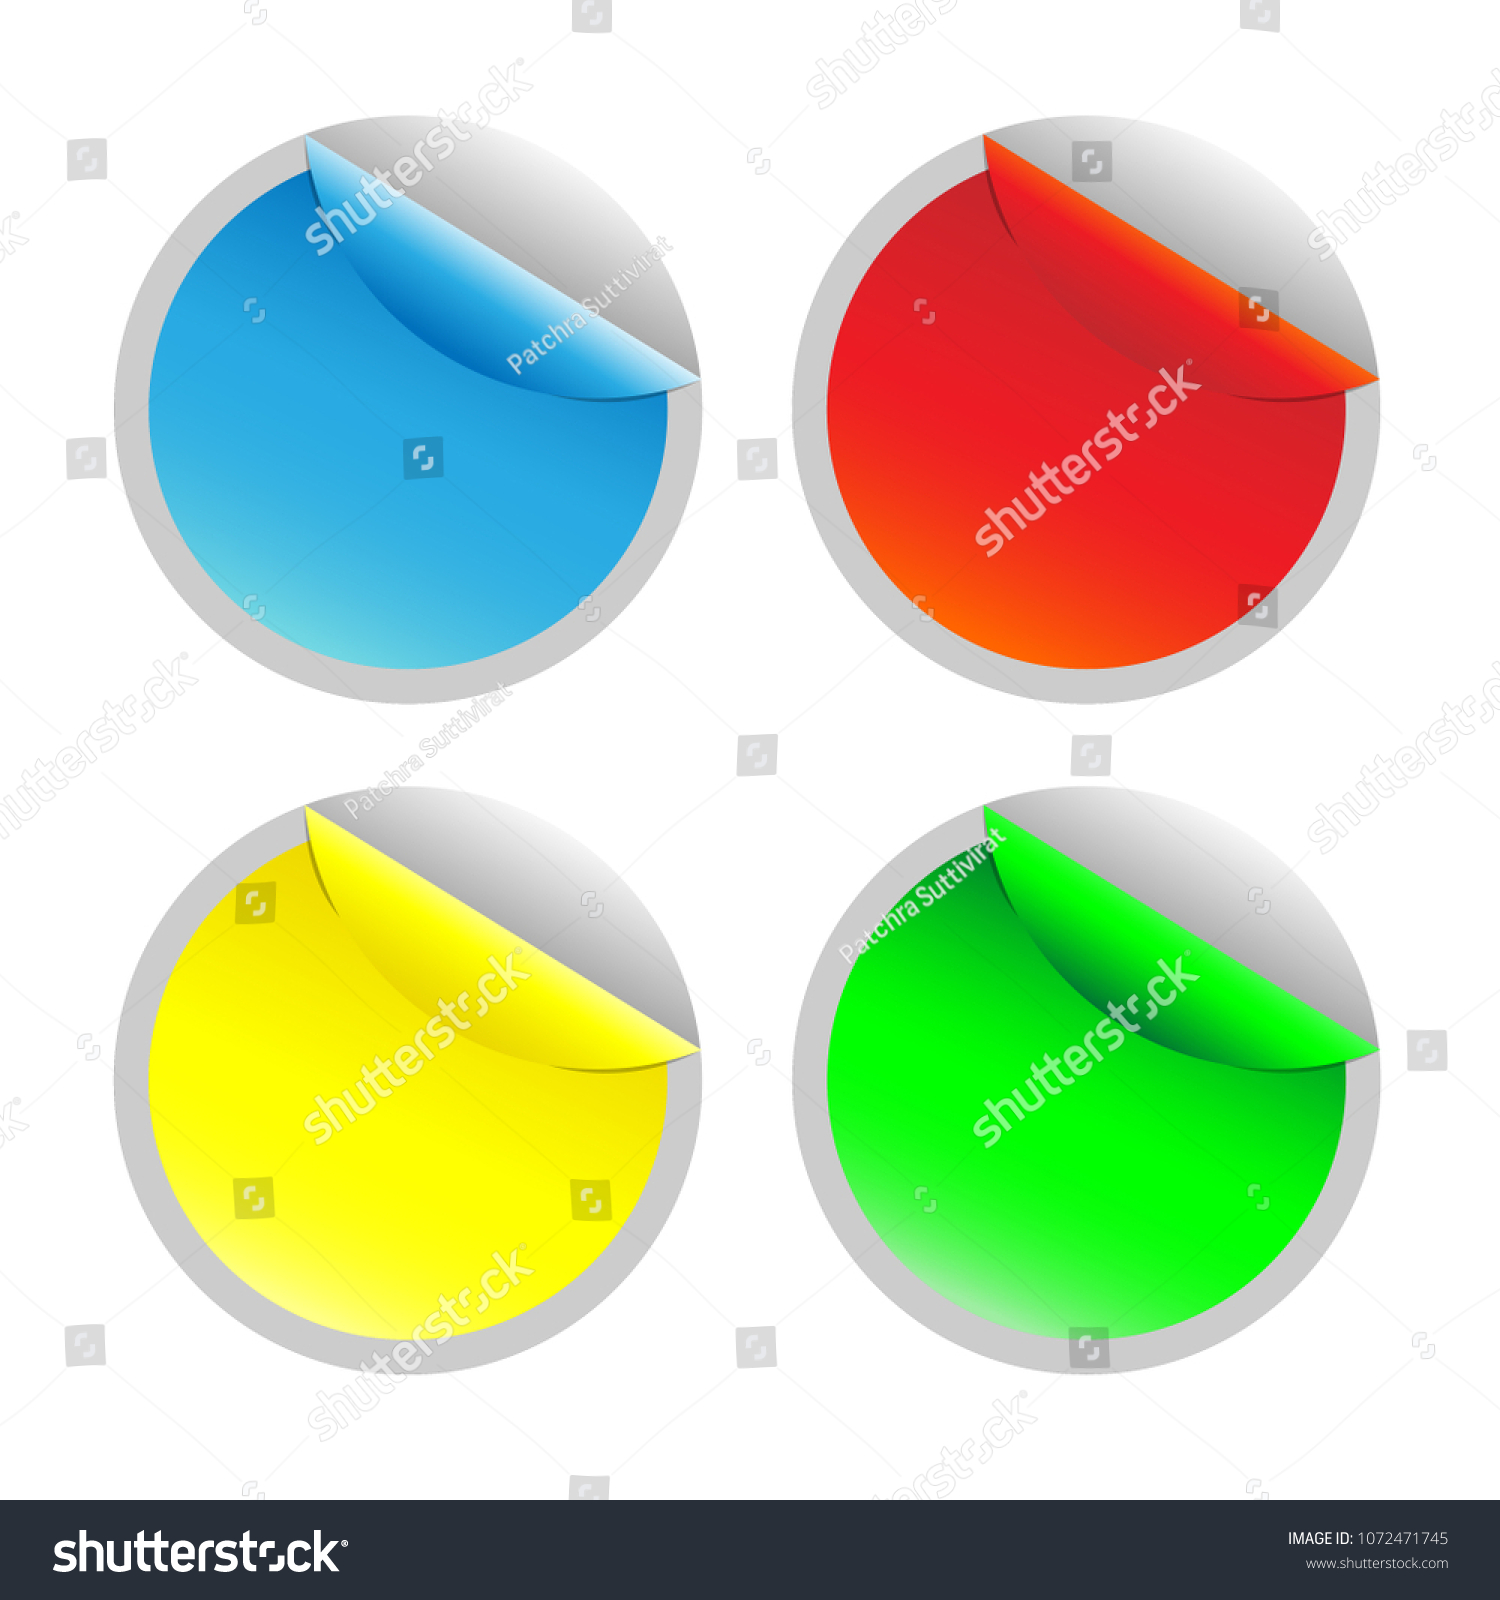 Sticker Template Circle With Curled Corner Round Advertising Design